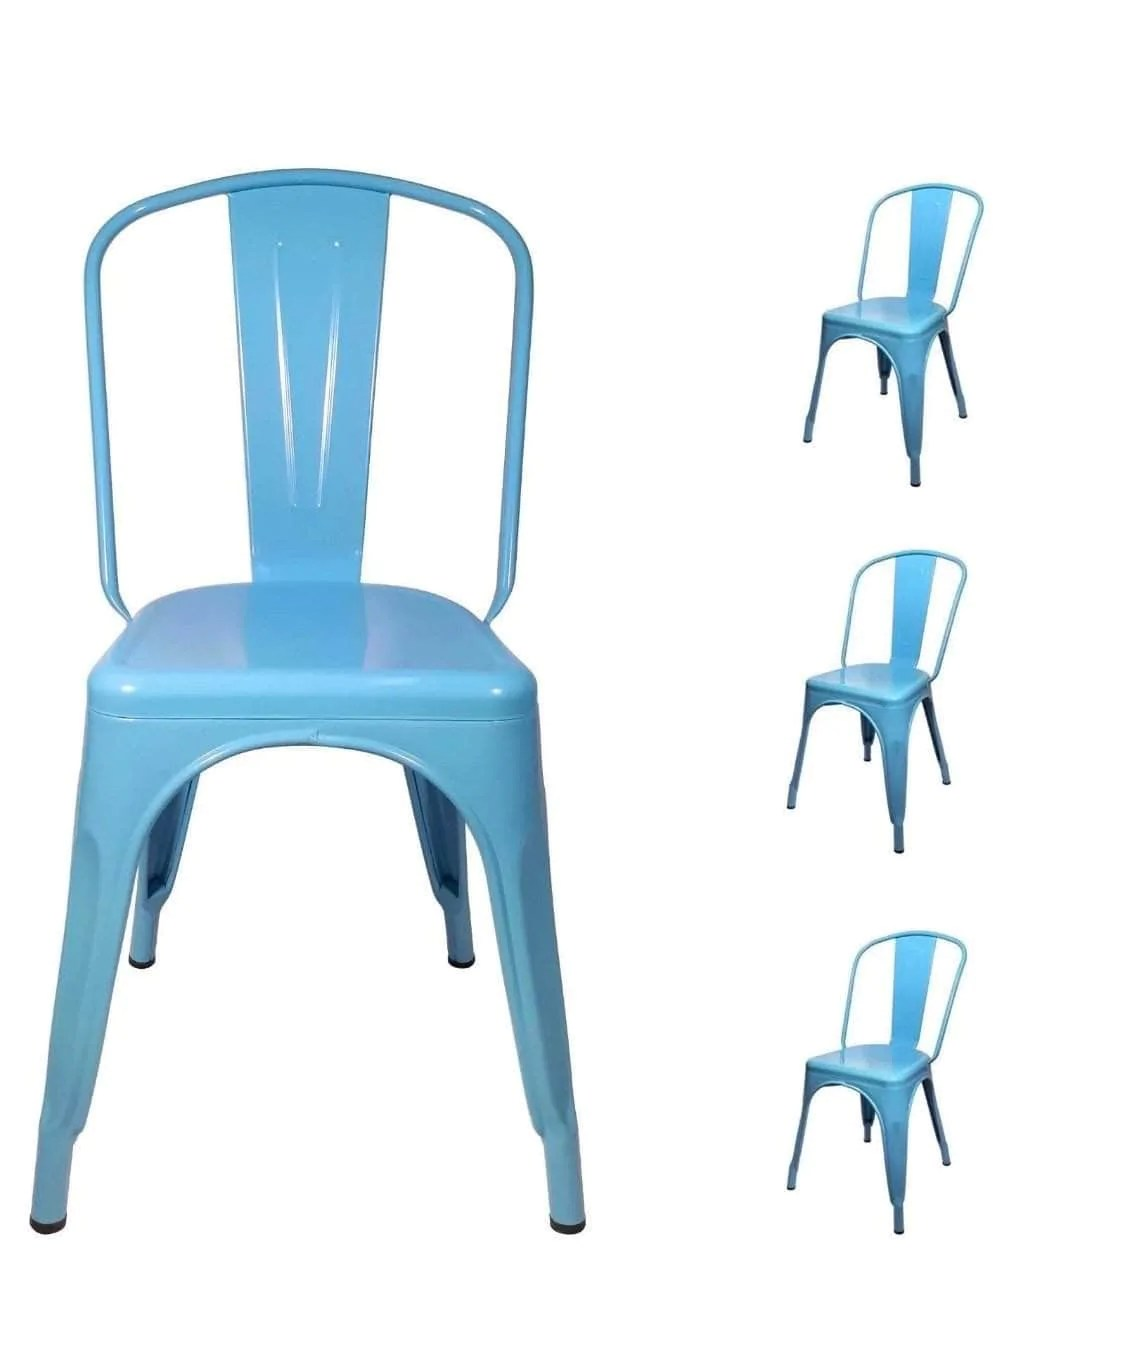 Egg Chair Perth Tolix Replica Cafe Chair Light Blue Buy Online